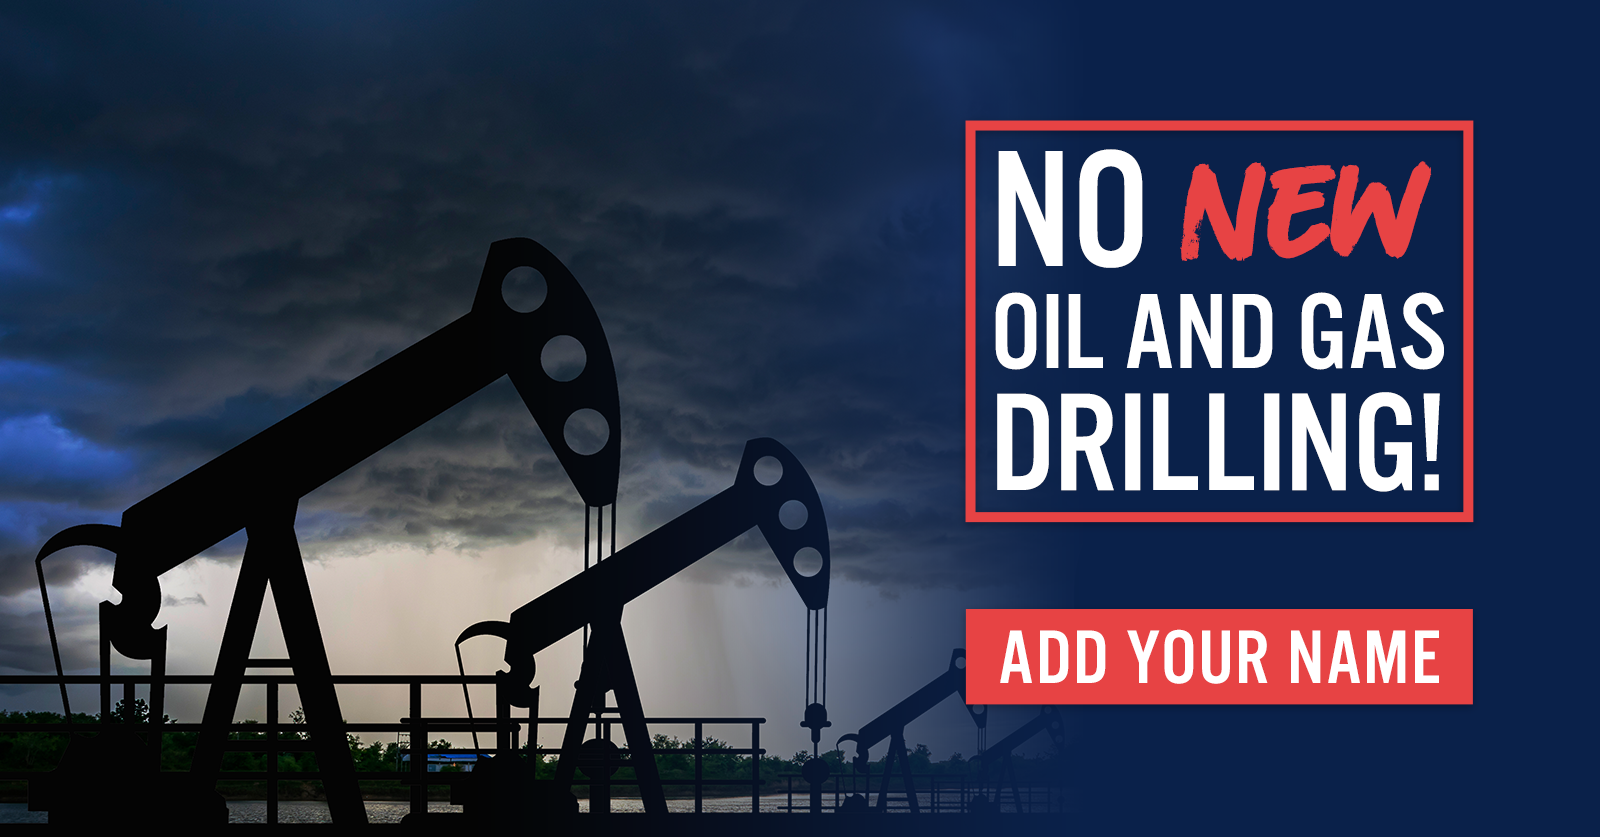 No new oil and gas drilling!